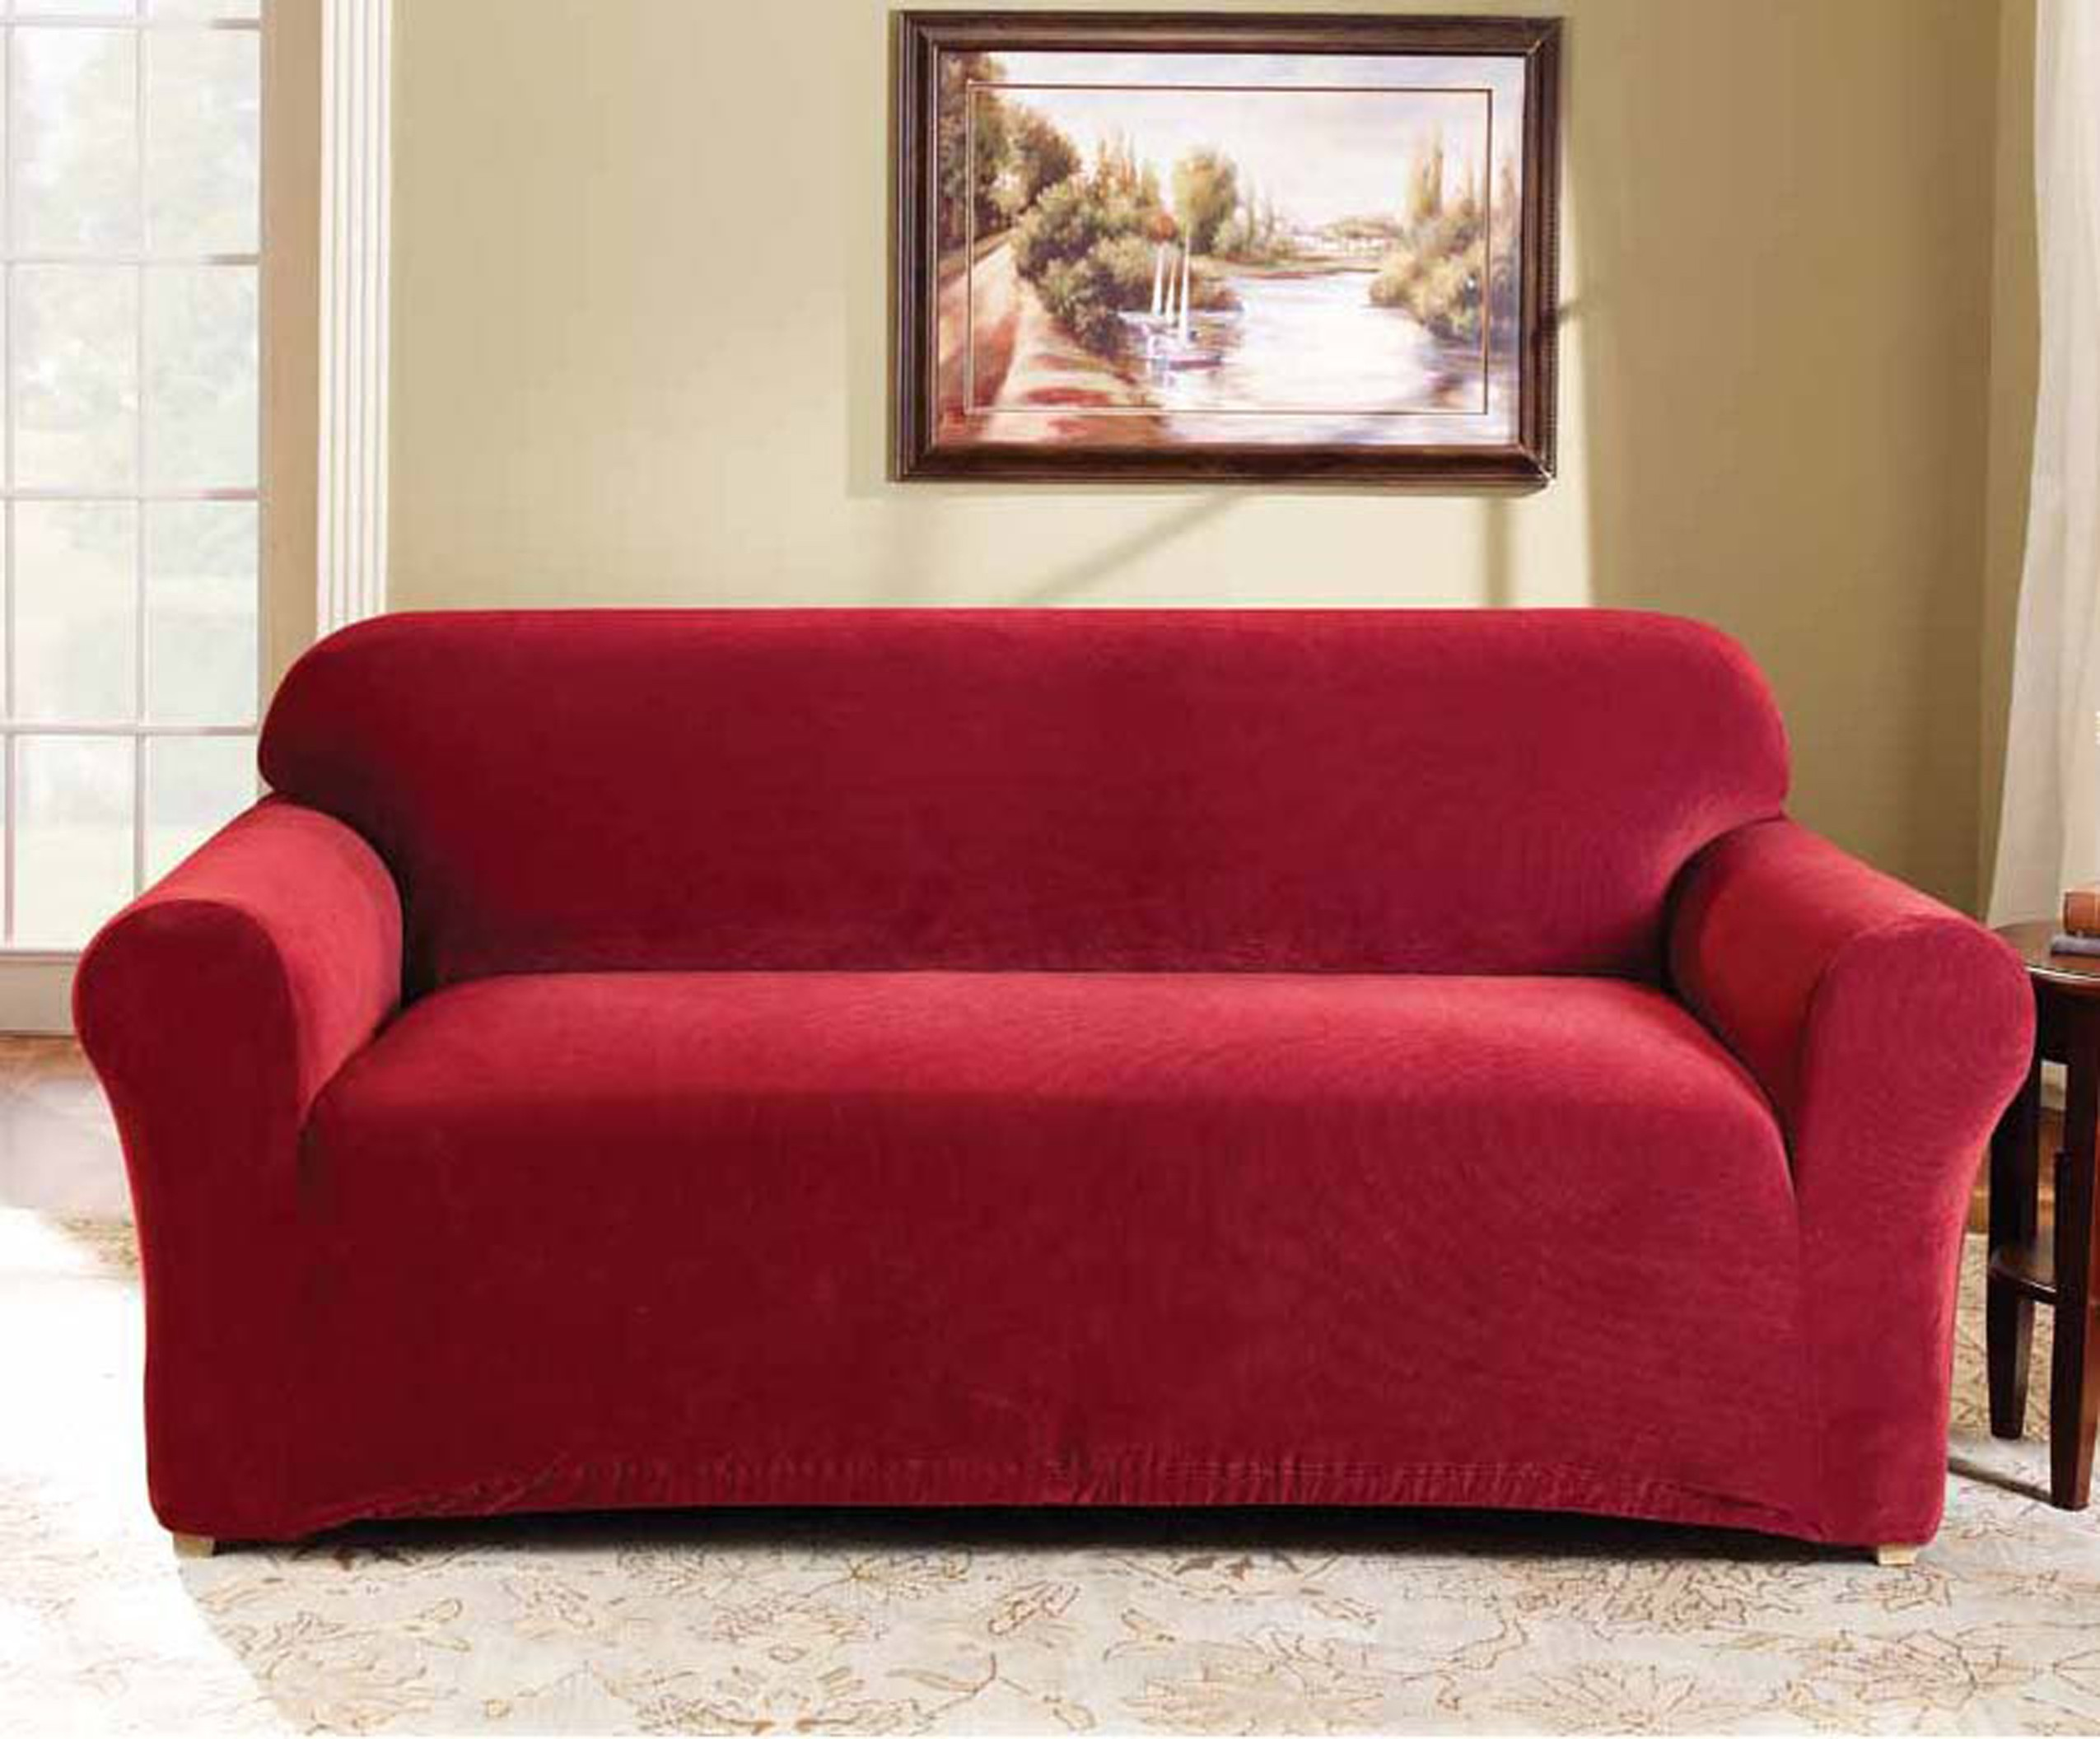 Beau Red 2 Seater Couch Cover By Surefit